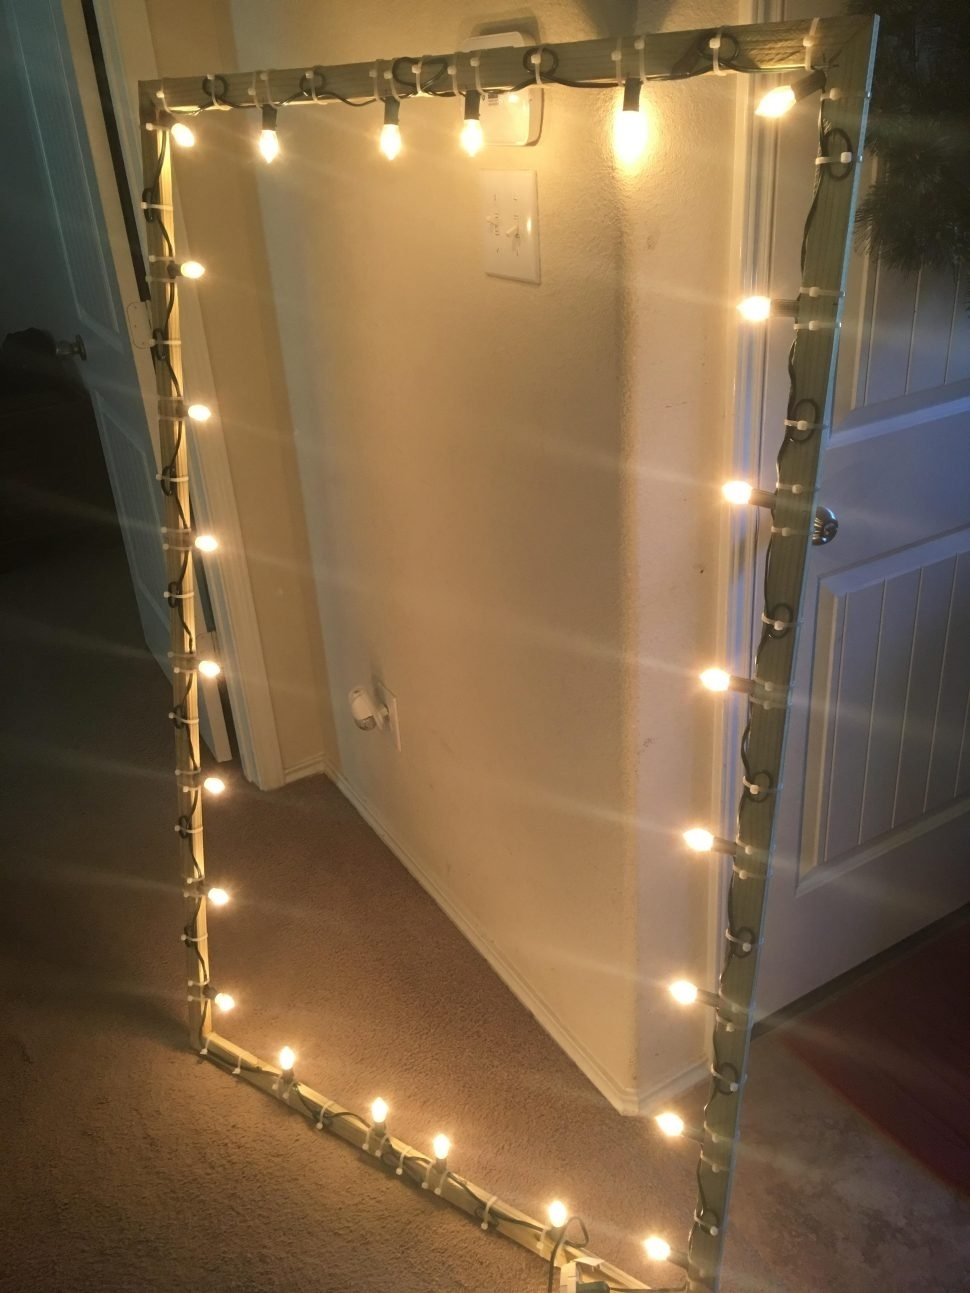 Inspiration about Diy : Christmas Light Window Frame Diy Hang Hanging Zip Ties Holiday Within Hanging Outdoor Christmas Lights Without Nails (#6 of 15)